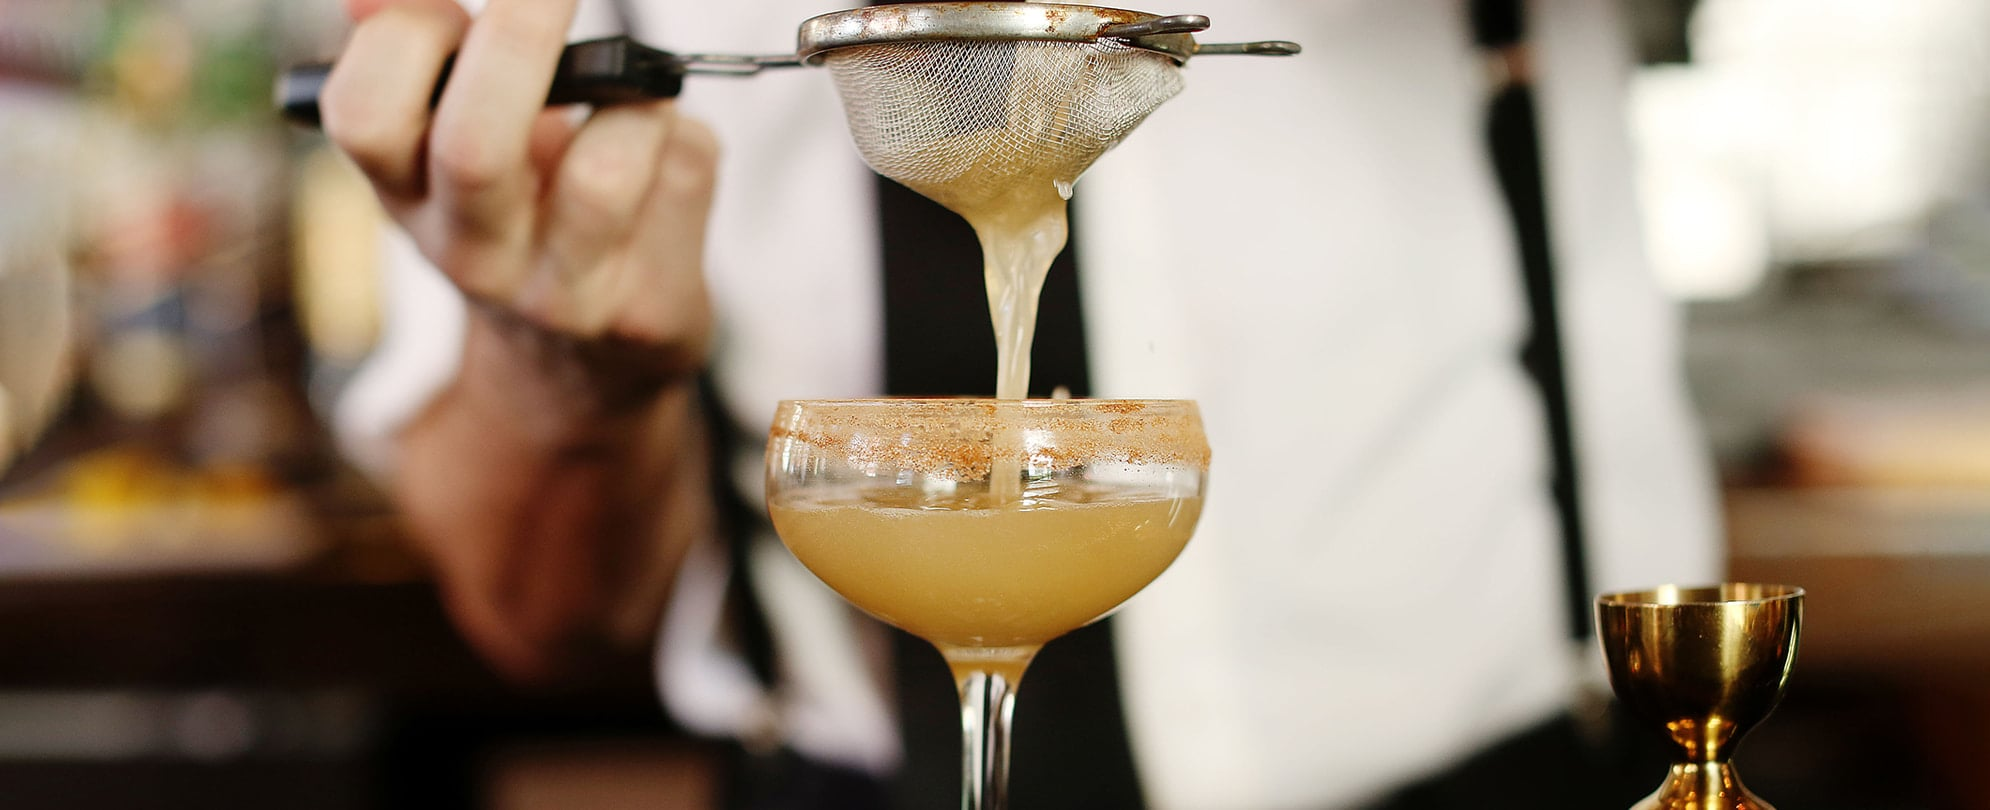 Bartender straining juice into a cocktail glass at a resort bar